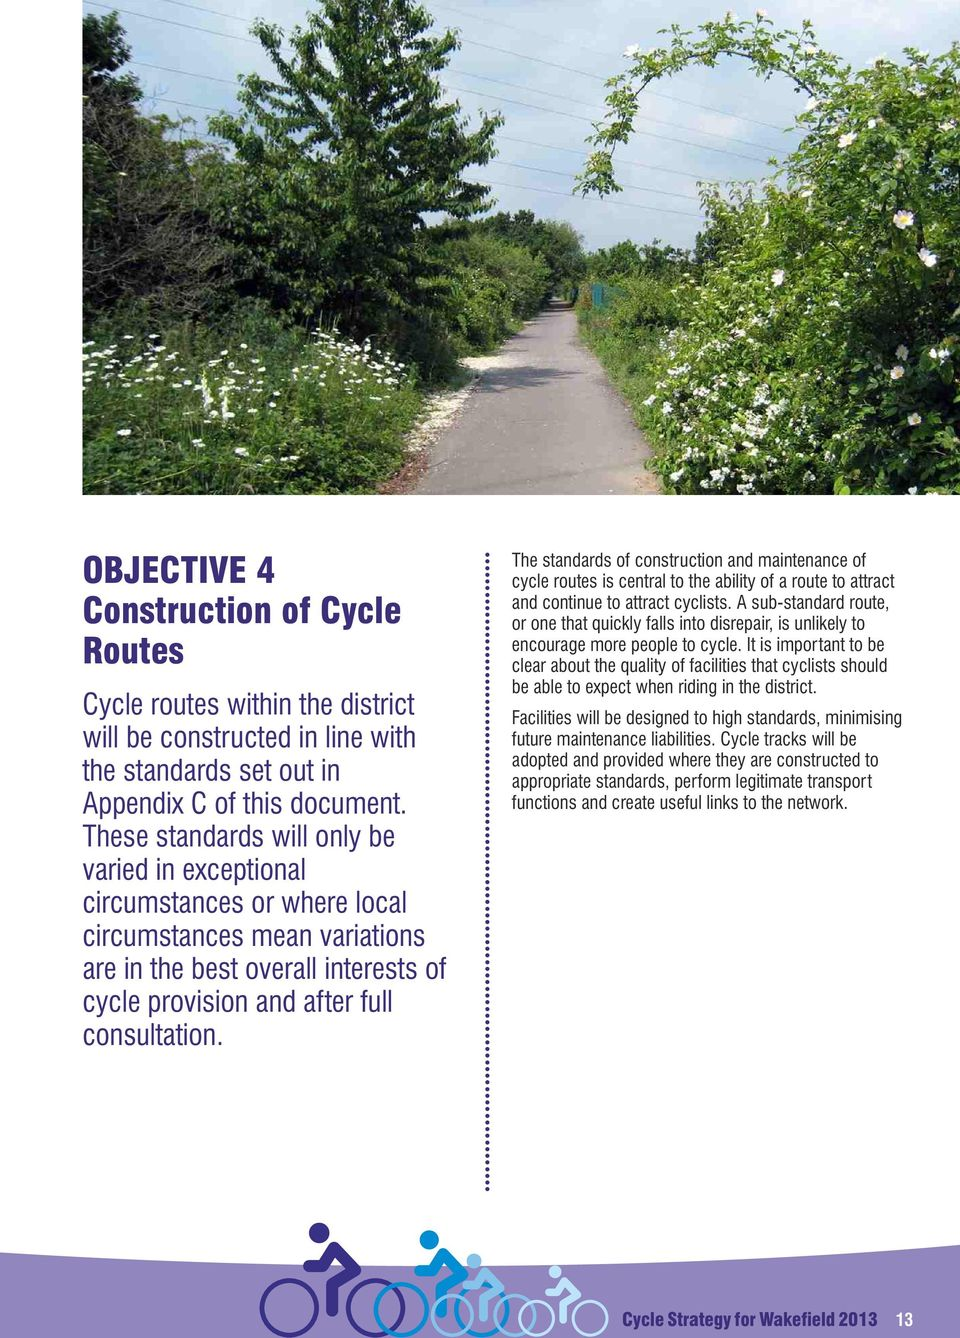 ... The standards of construction and maintenance of cycle routes is central to the ability of a route to attract and continue to attract cyclists.